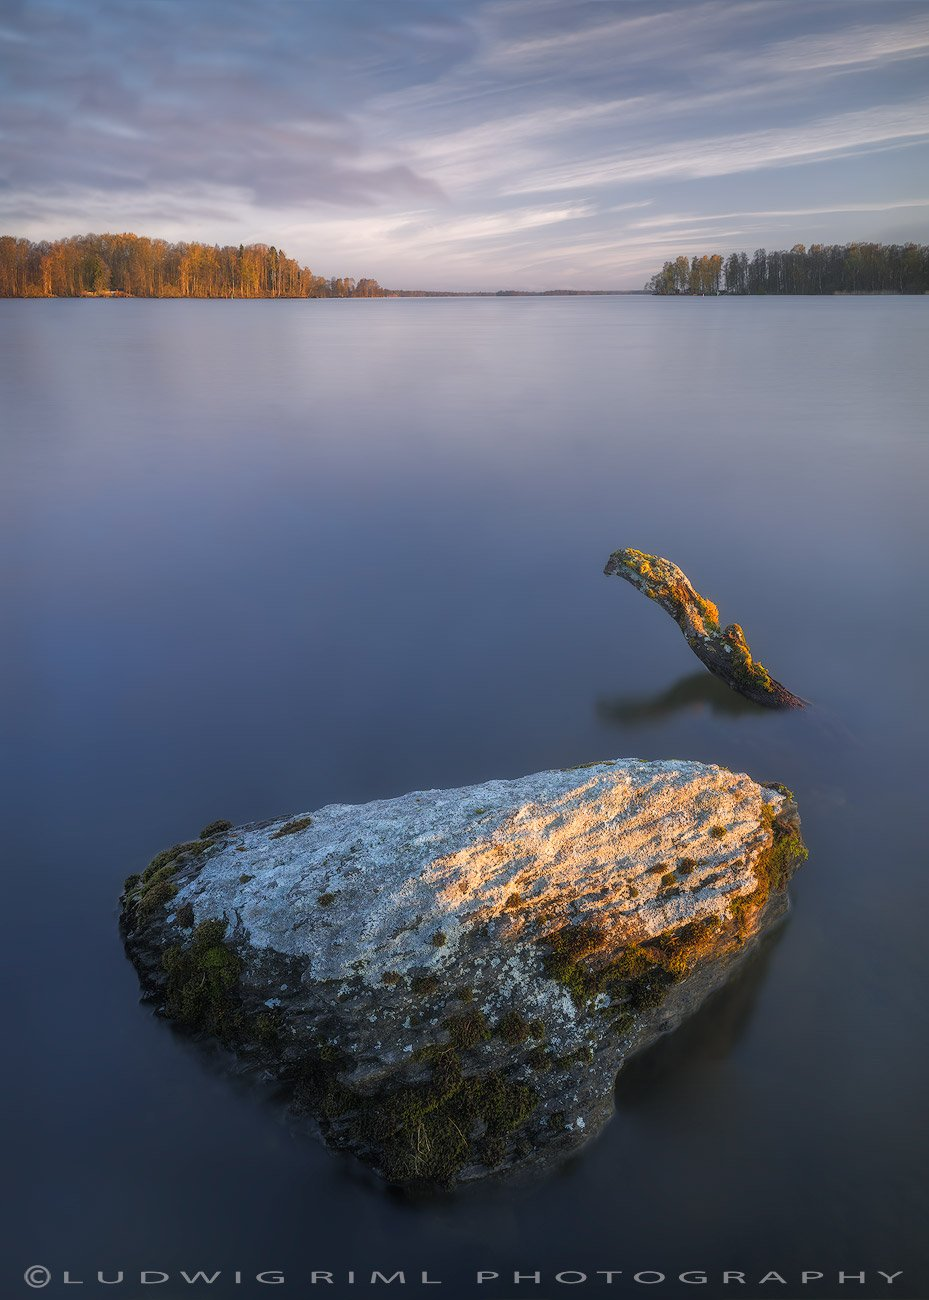 blue, branch, clouds, harmony, hjalmaren, lake, lichenes, lichens, morning, moss, nature, nature sight, outdoors, peace, rock, scandinavia, sunrise, sweden, tranquility, trees, water, Ludwig Riml